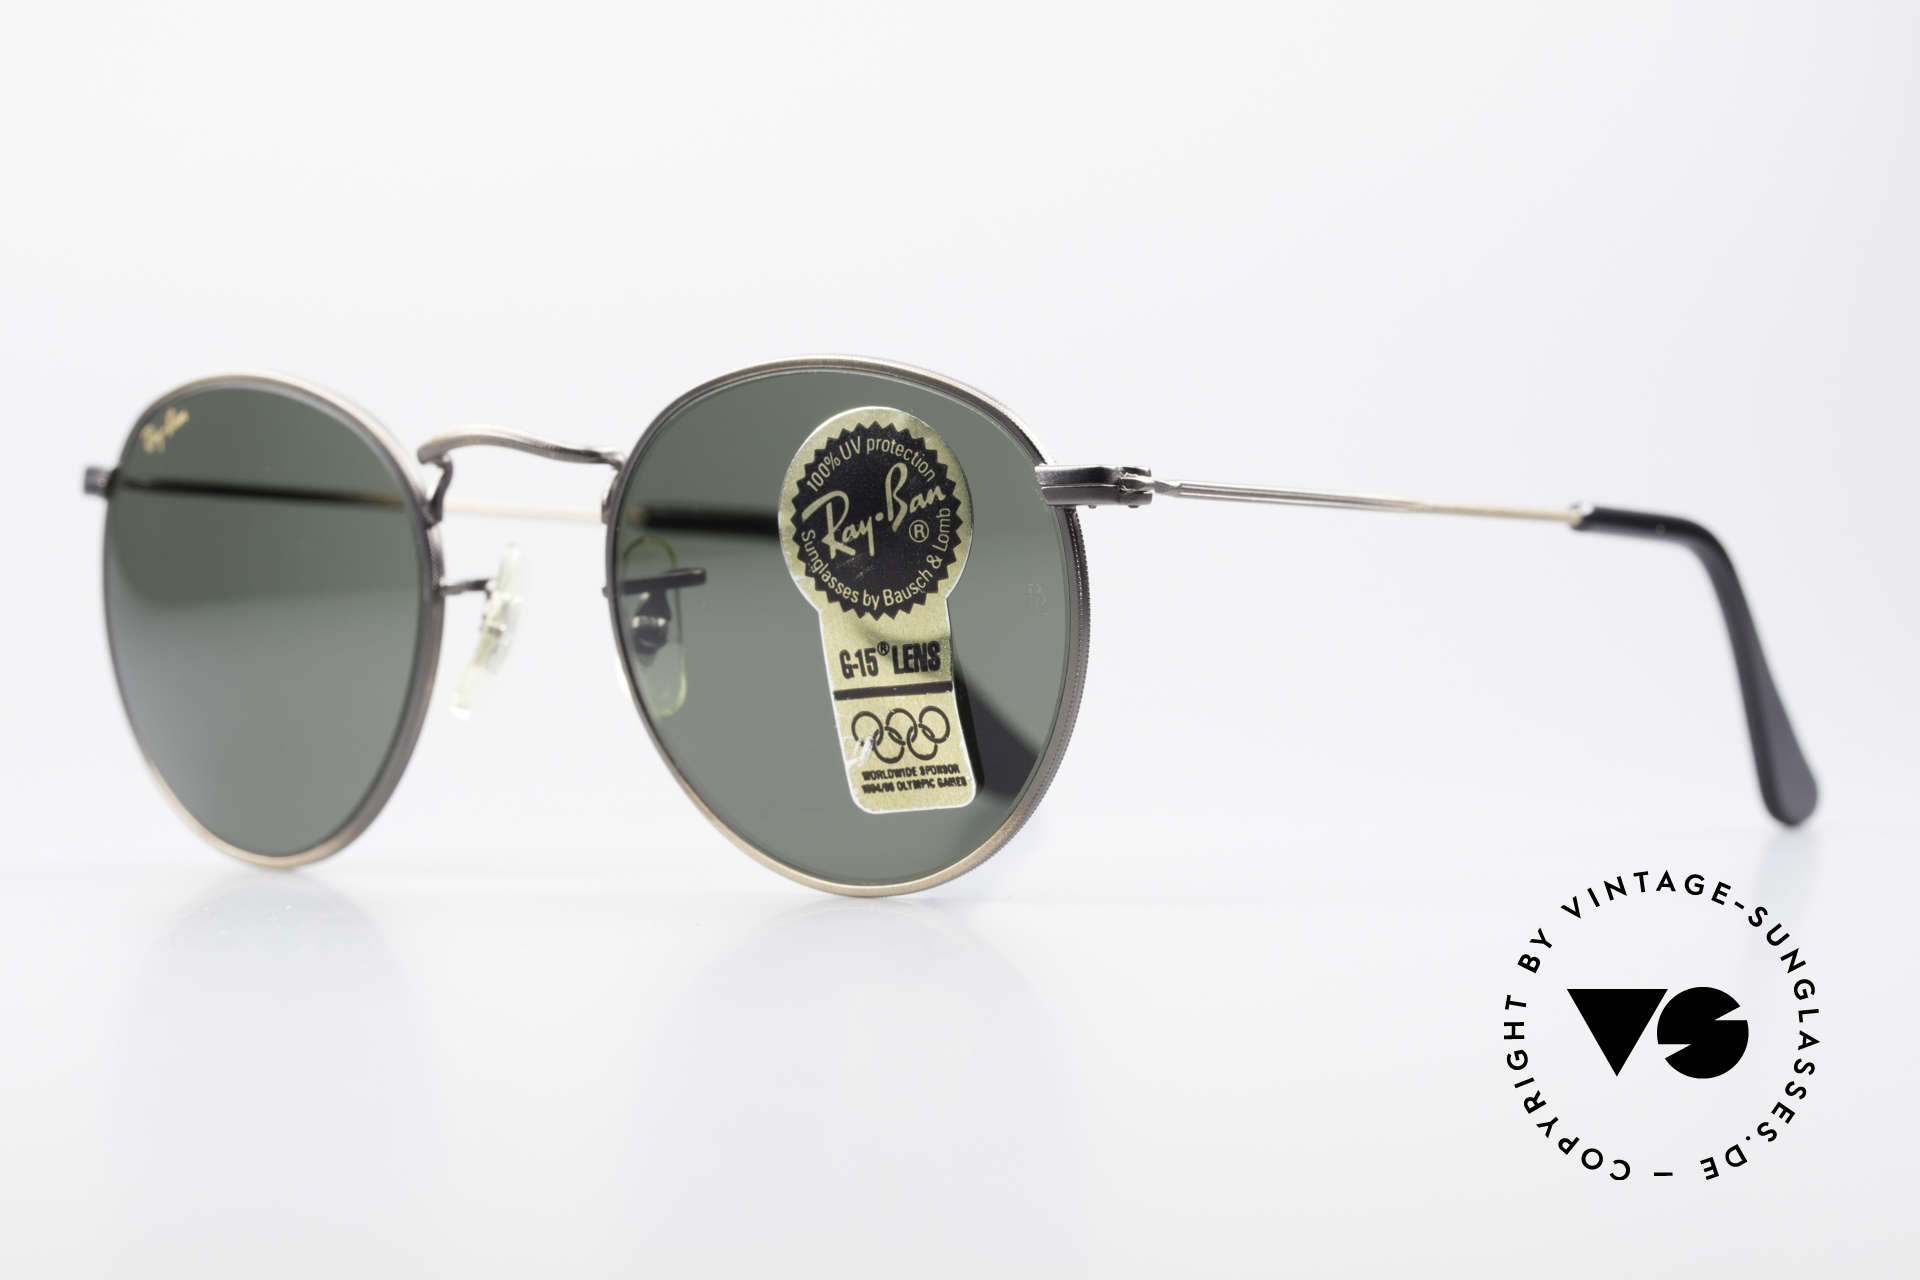 Ray Ban Round Metal 47 Small Round Vintage Shades, legendary B&L mineral lenses (100% UV protection), Made for Men and Women